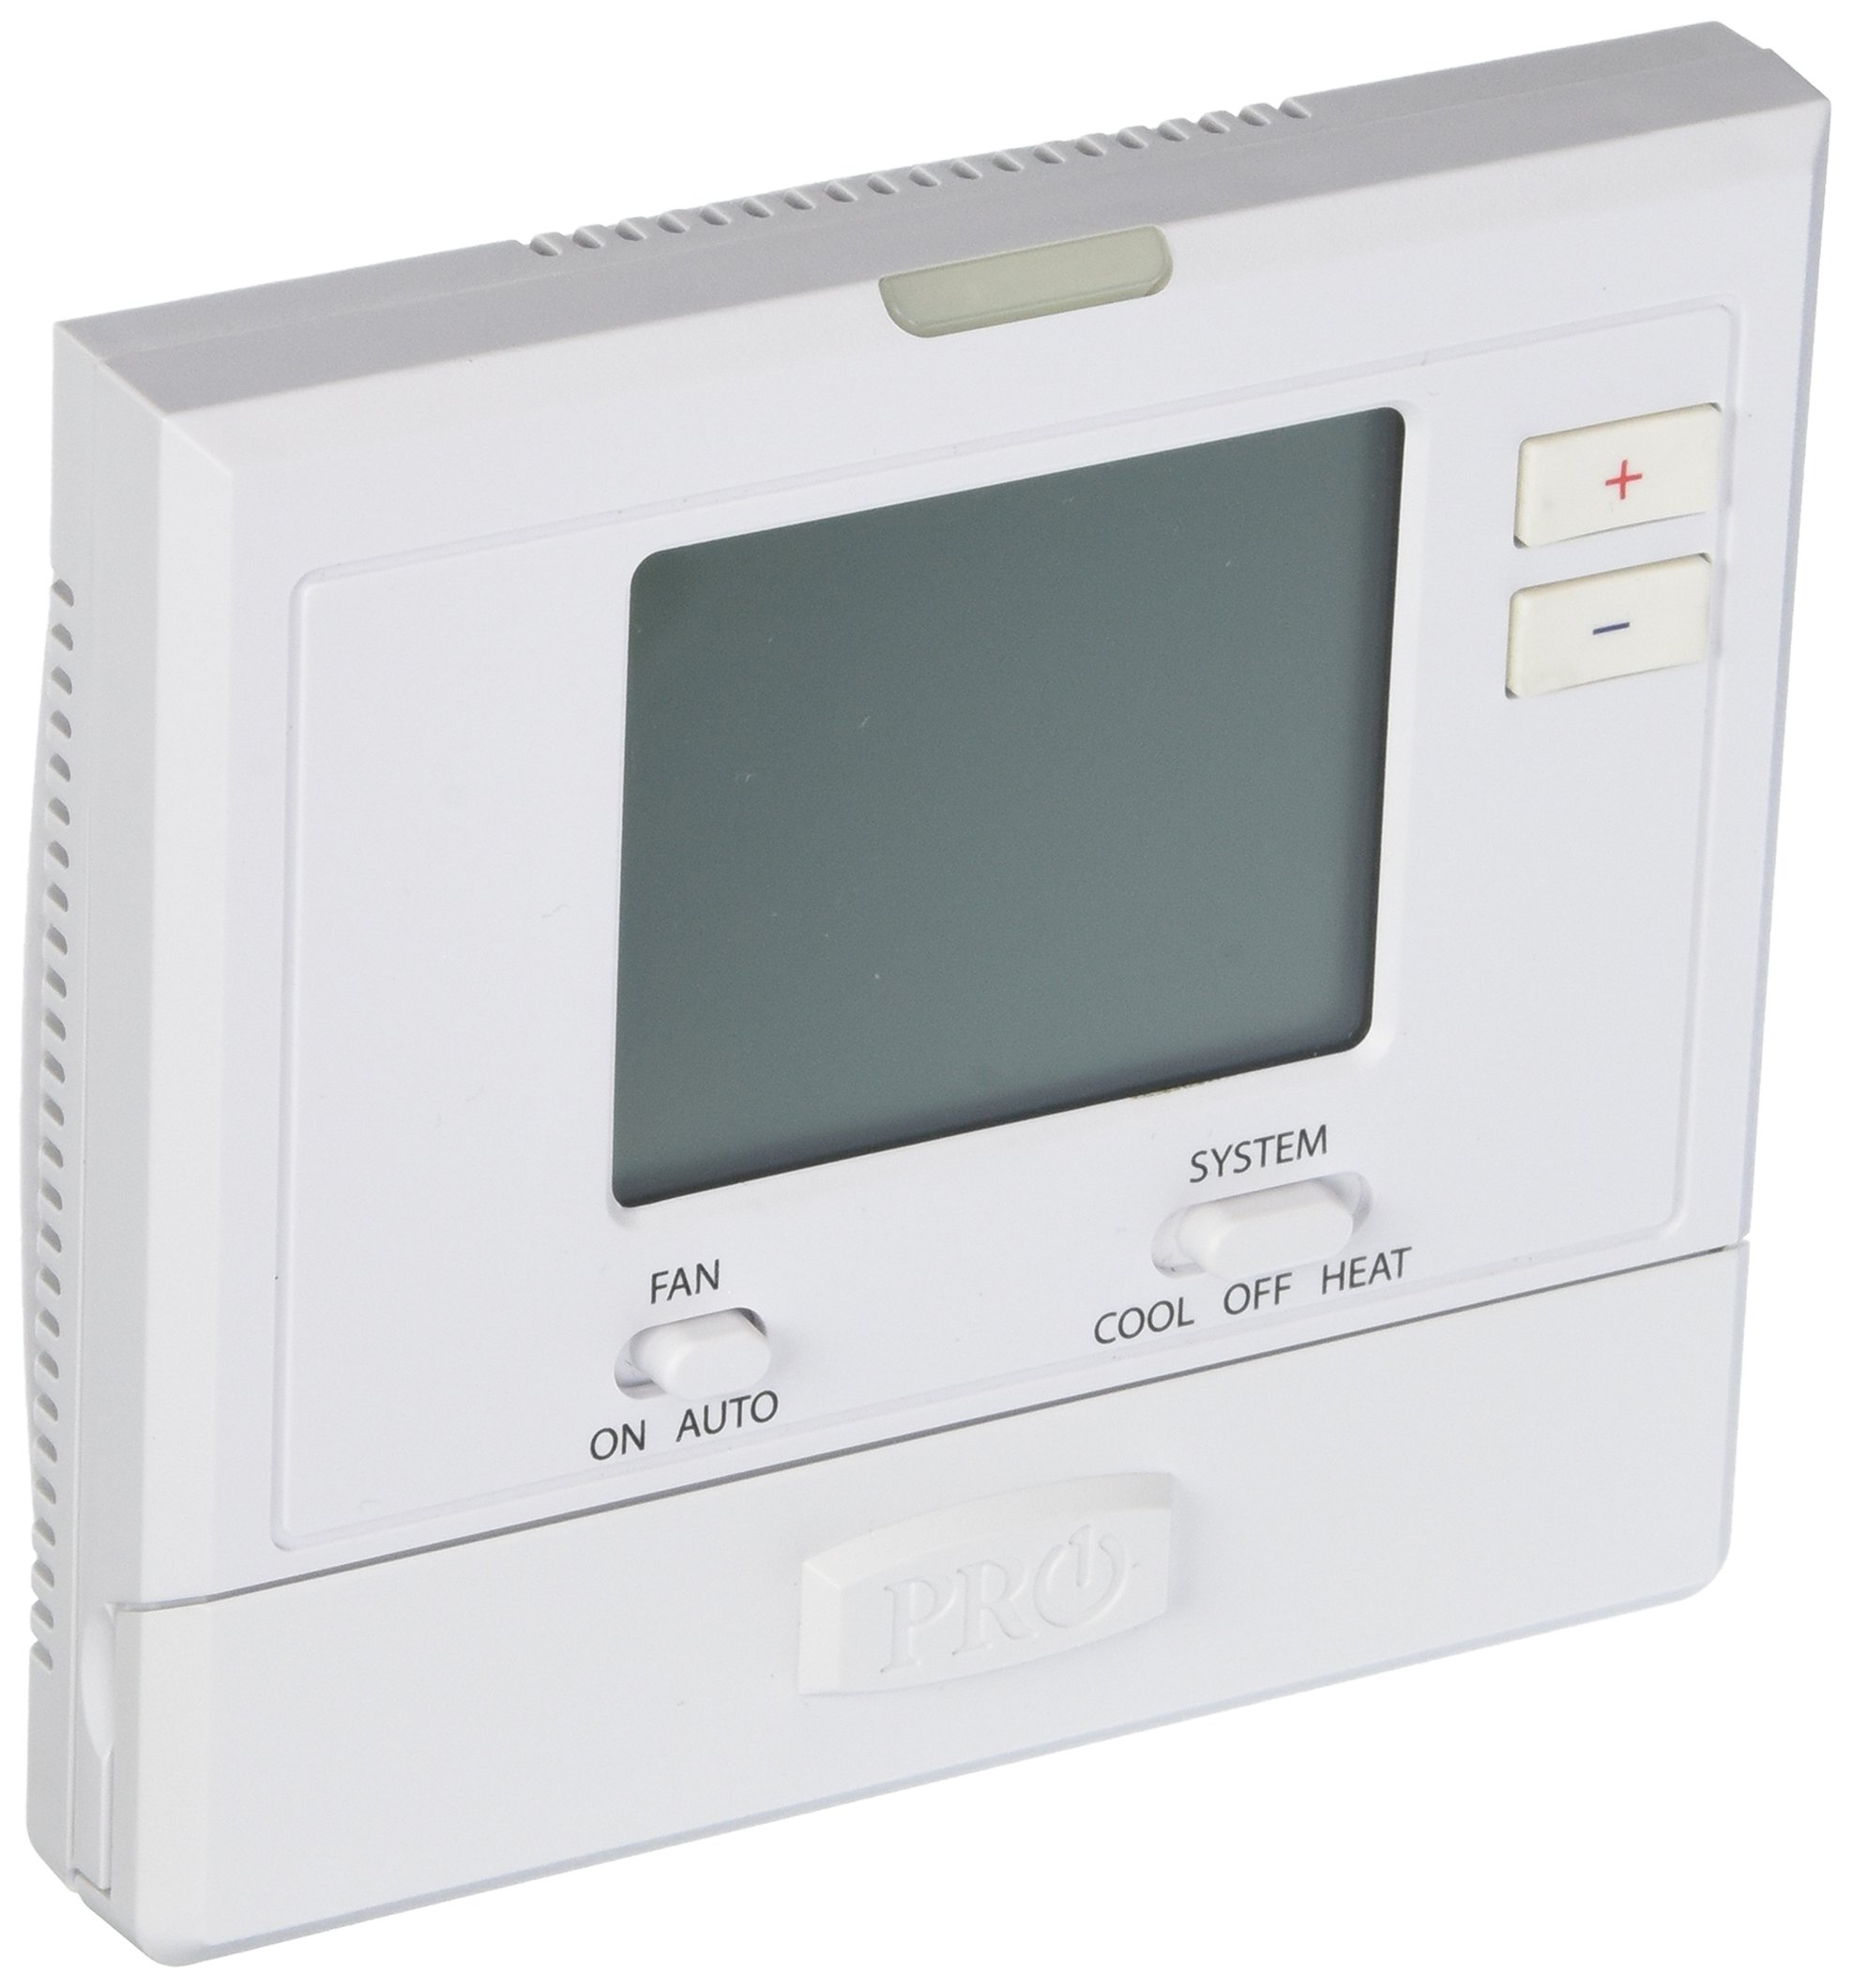 PRO1 IAQ T701 Non-Programmable Electronic Thermostat by PRO1 IAQ